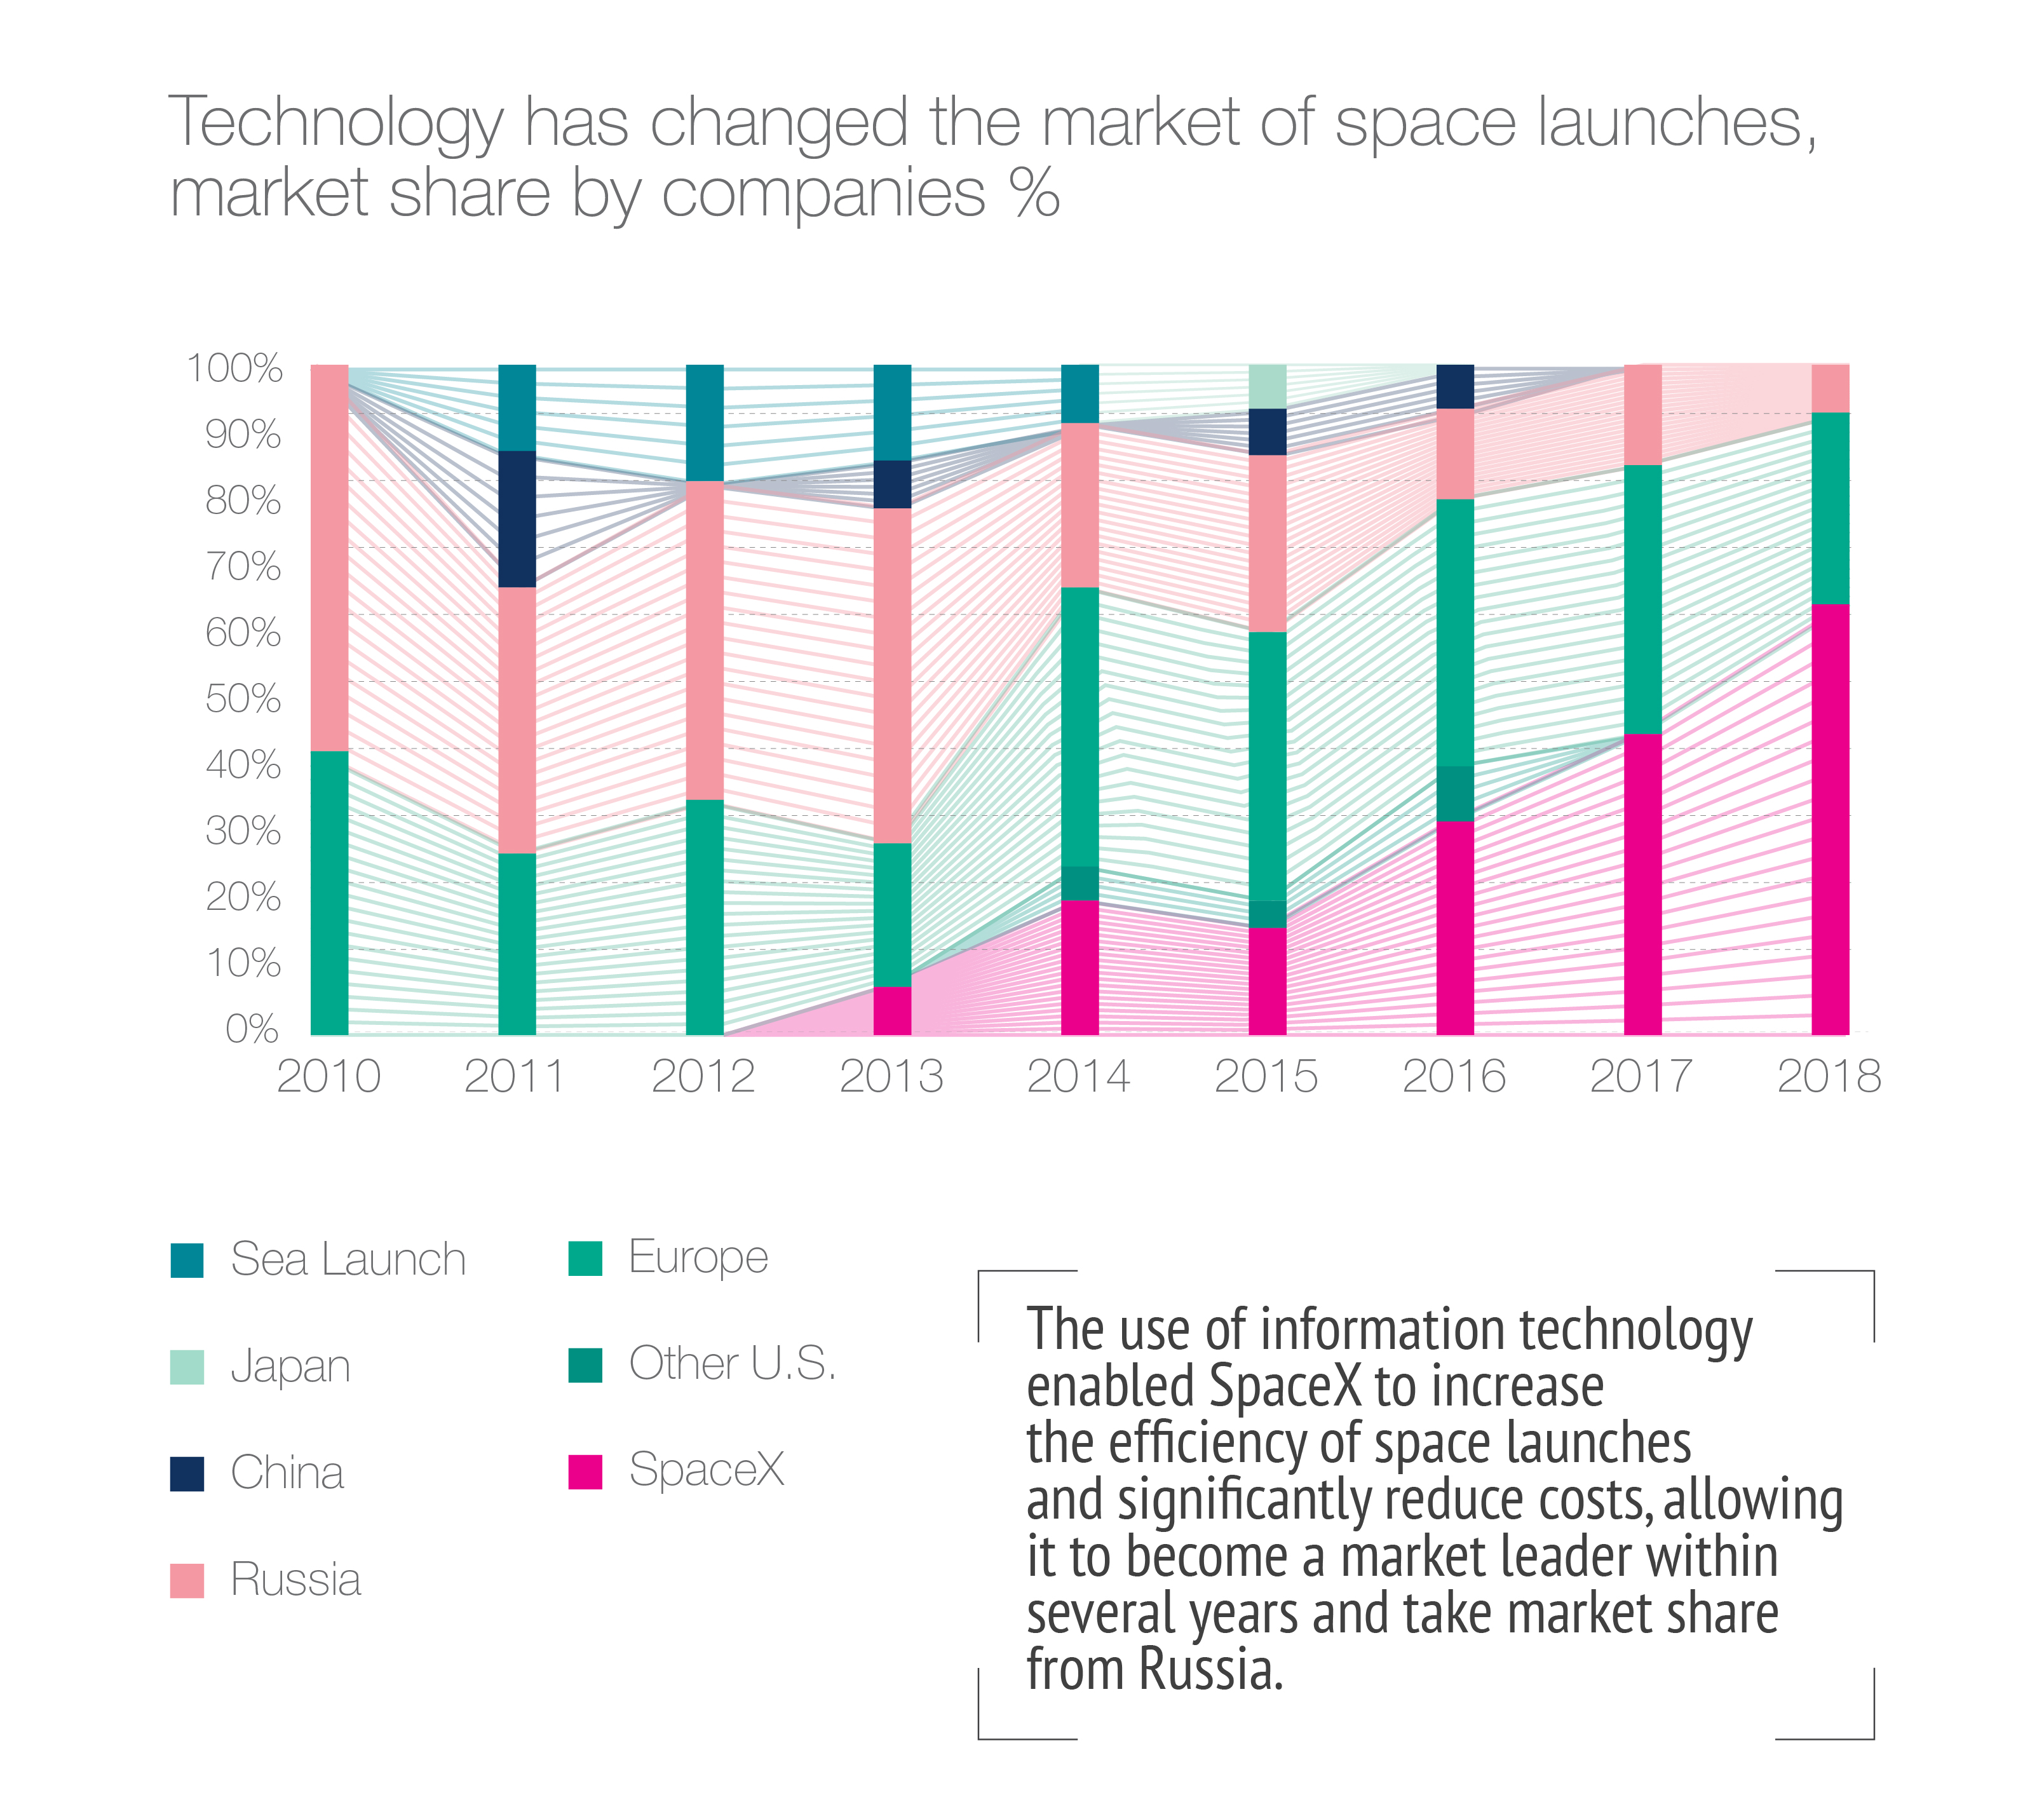 Technology has changed the market of space launches.jpg